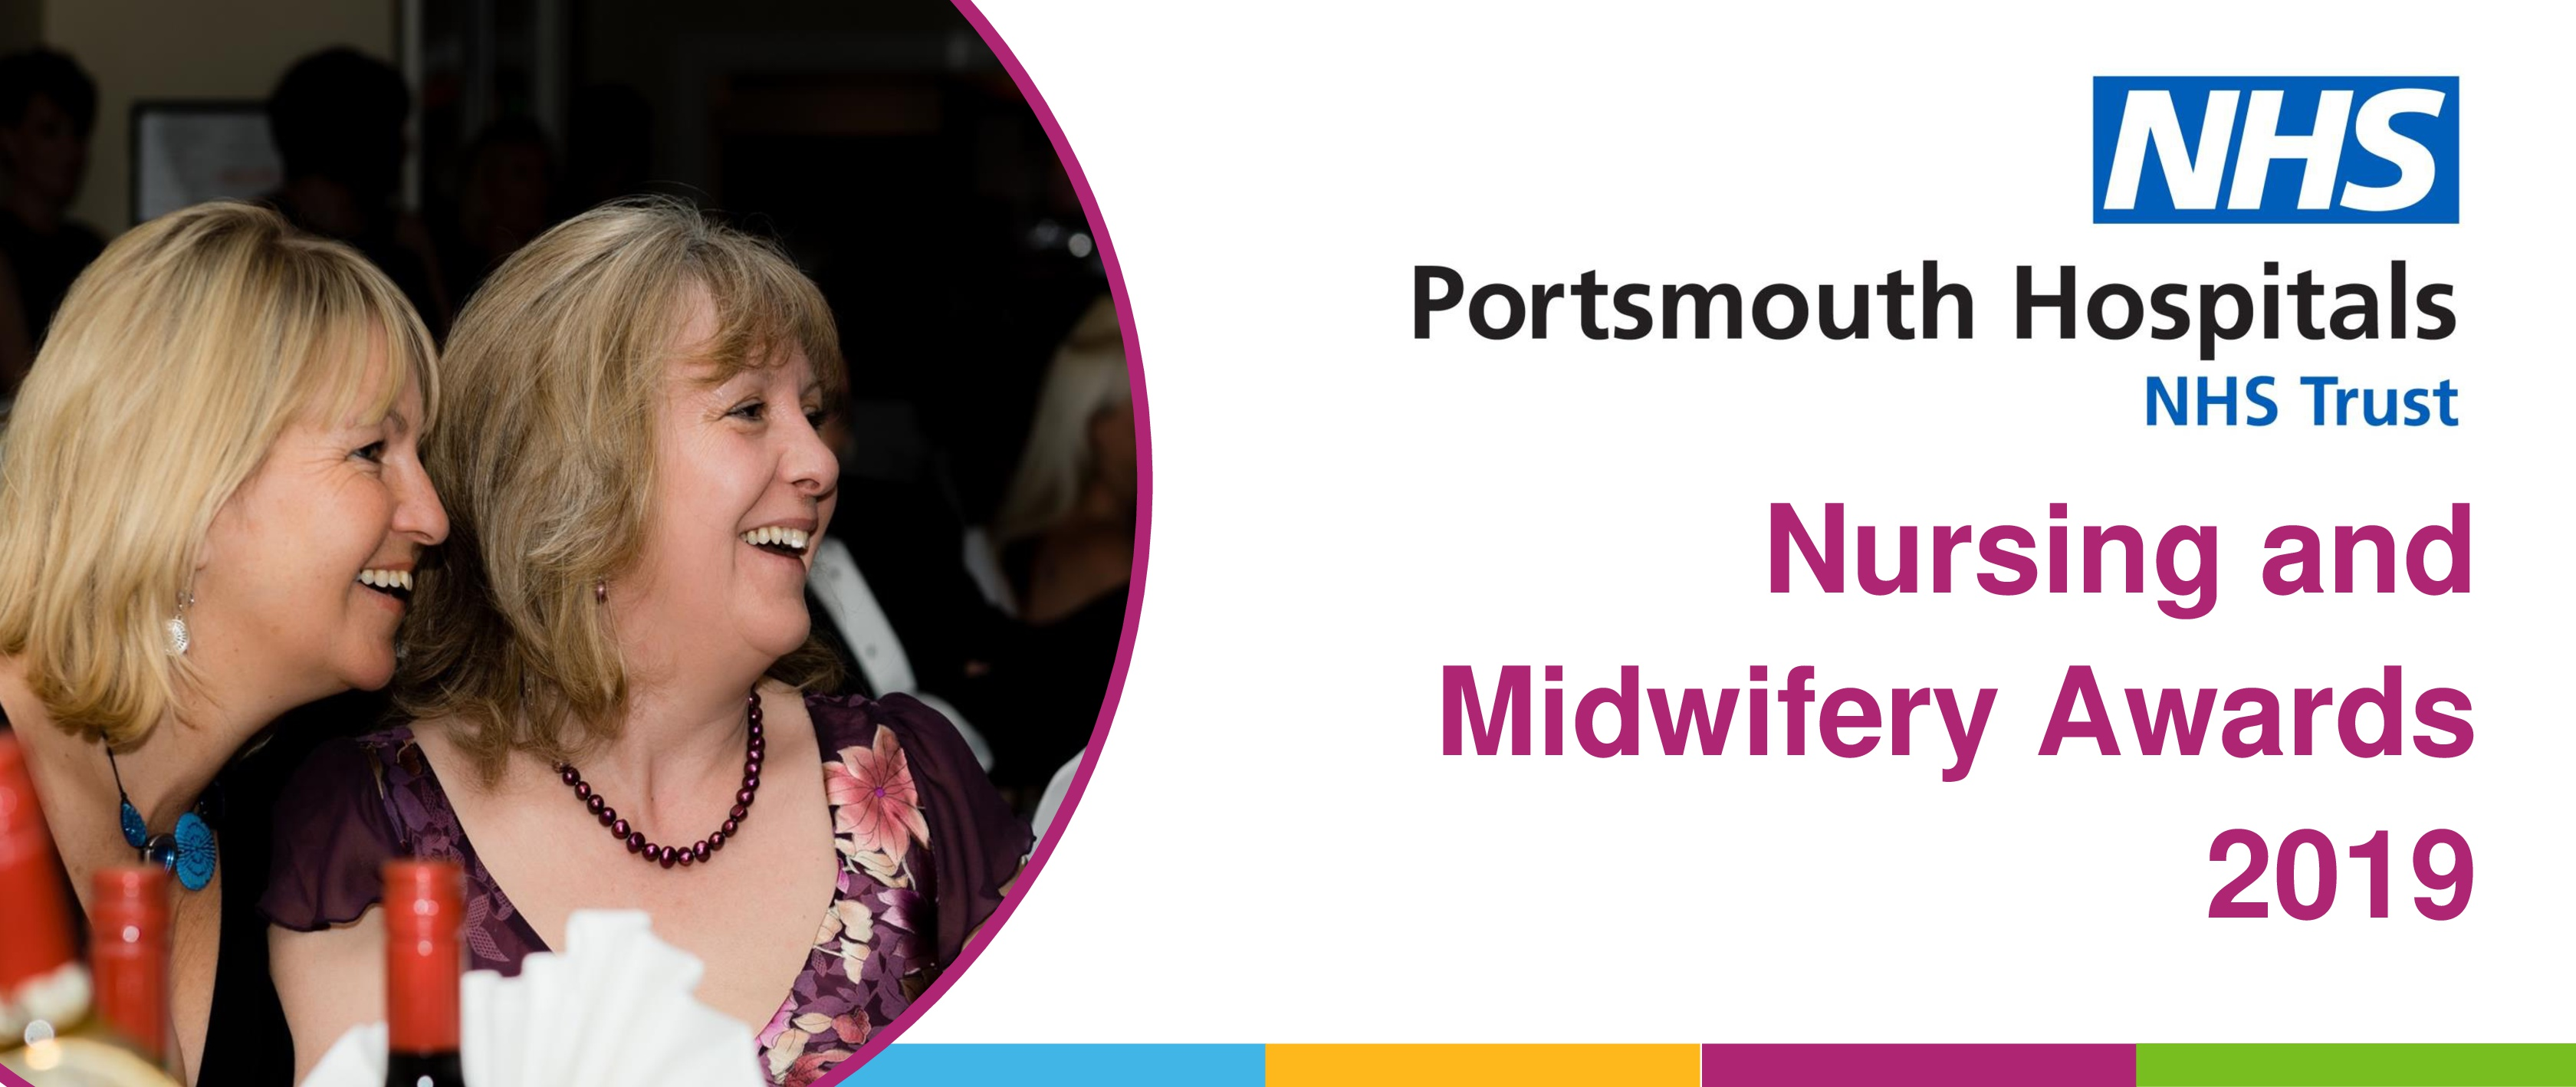 Nominations are now open for this year's Nursing and Midwifery Awards